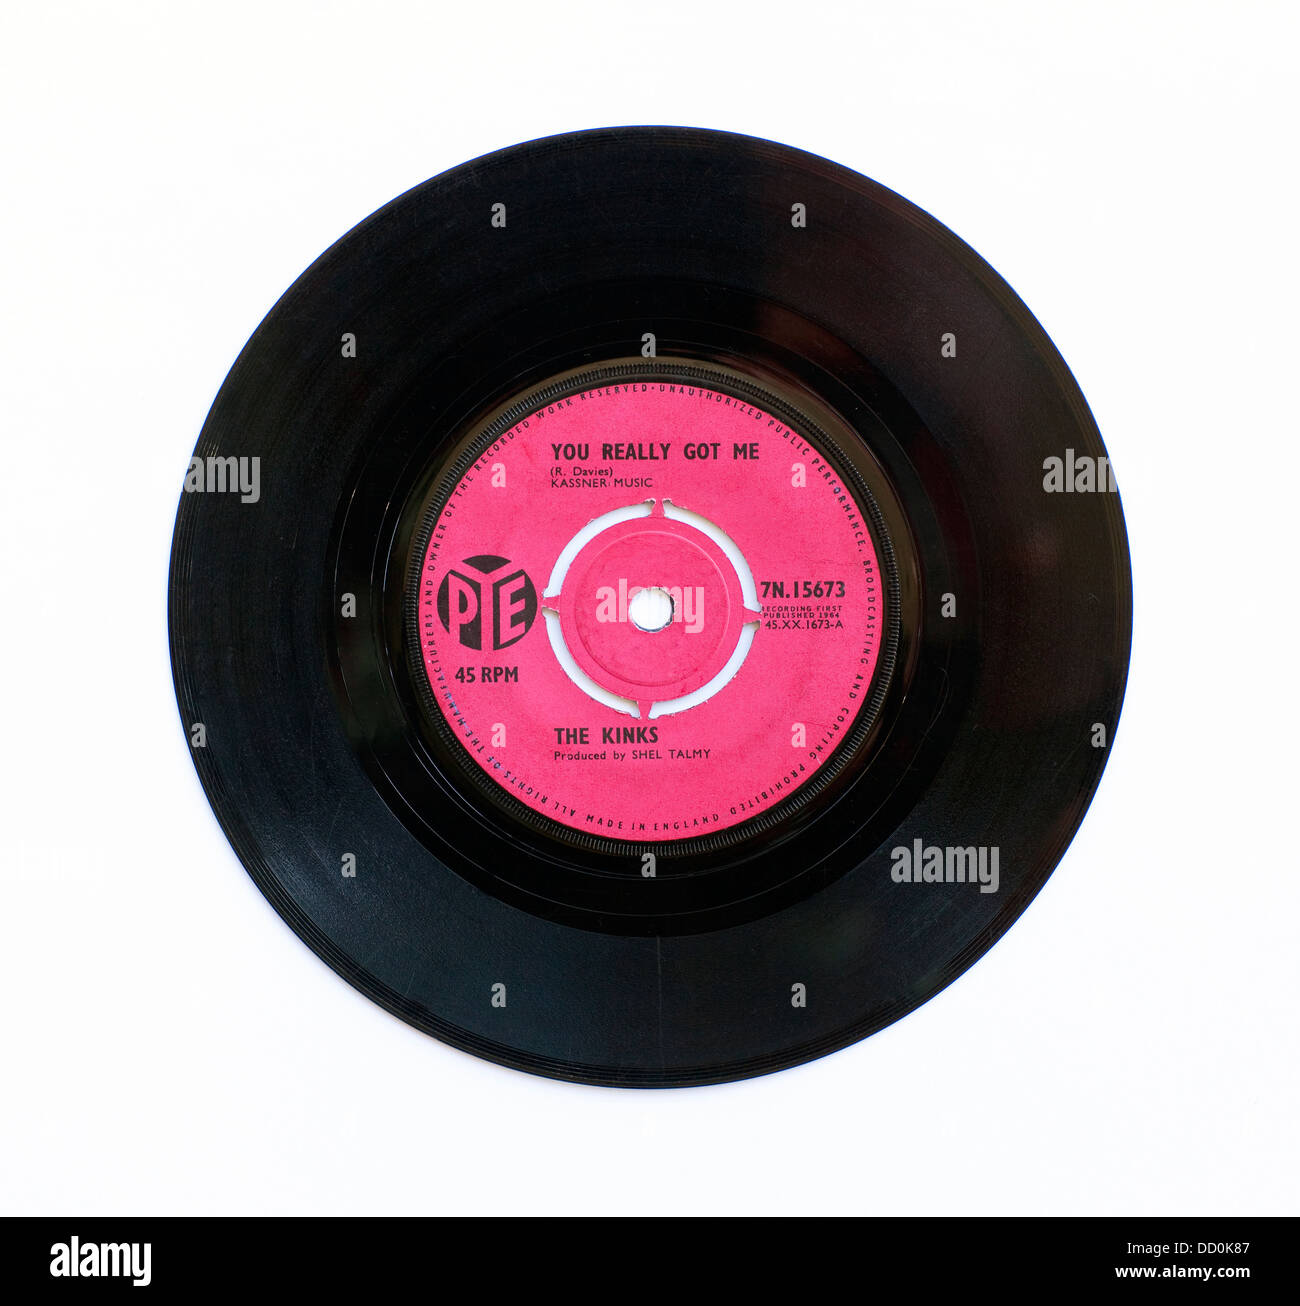 The Kinks - You Really Got Me, 7' single on Pye Records (re-issue) - Stock Image